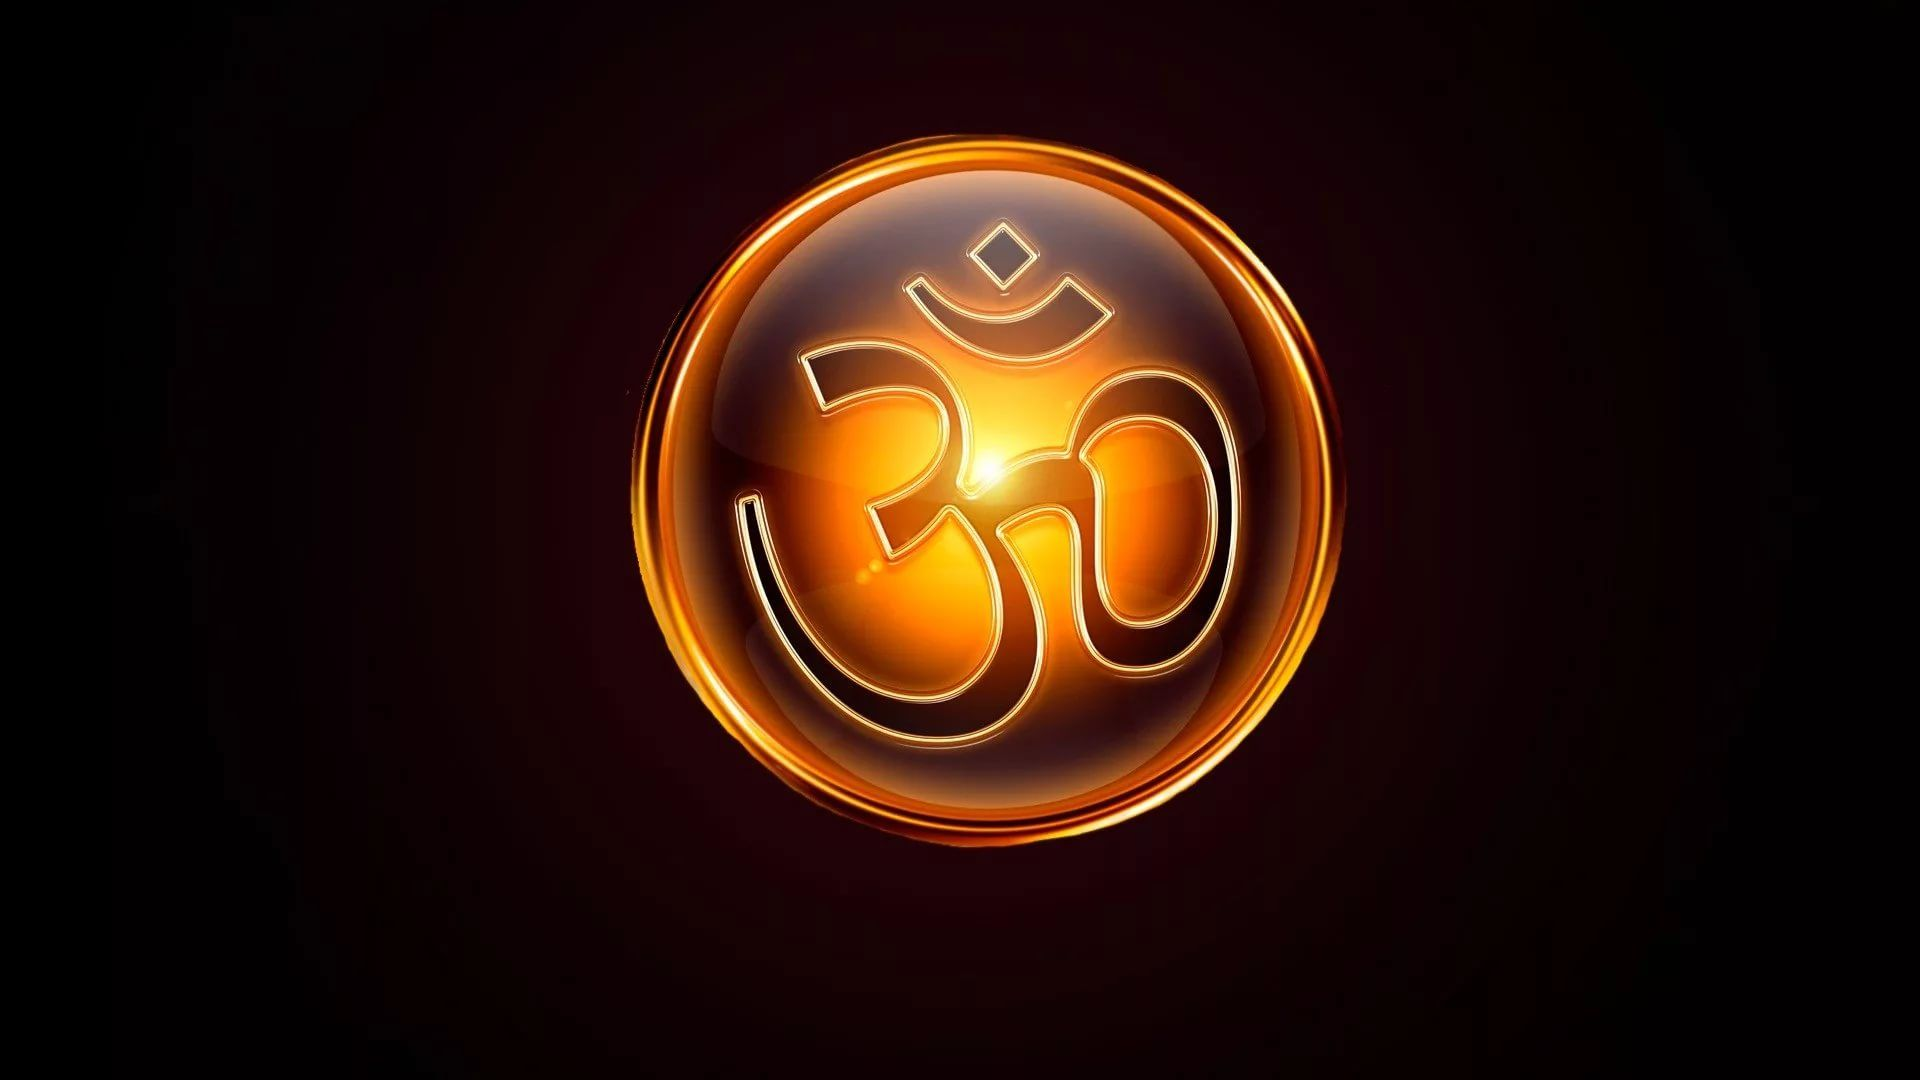 Om beautiful wallpaper